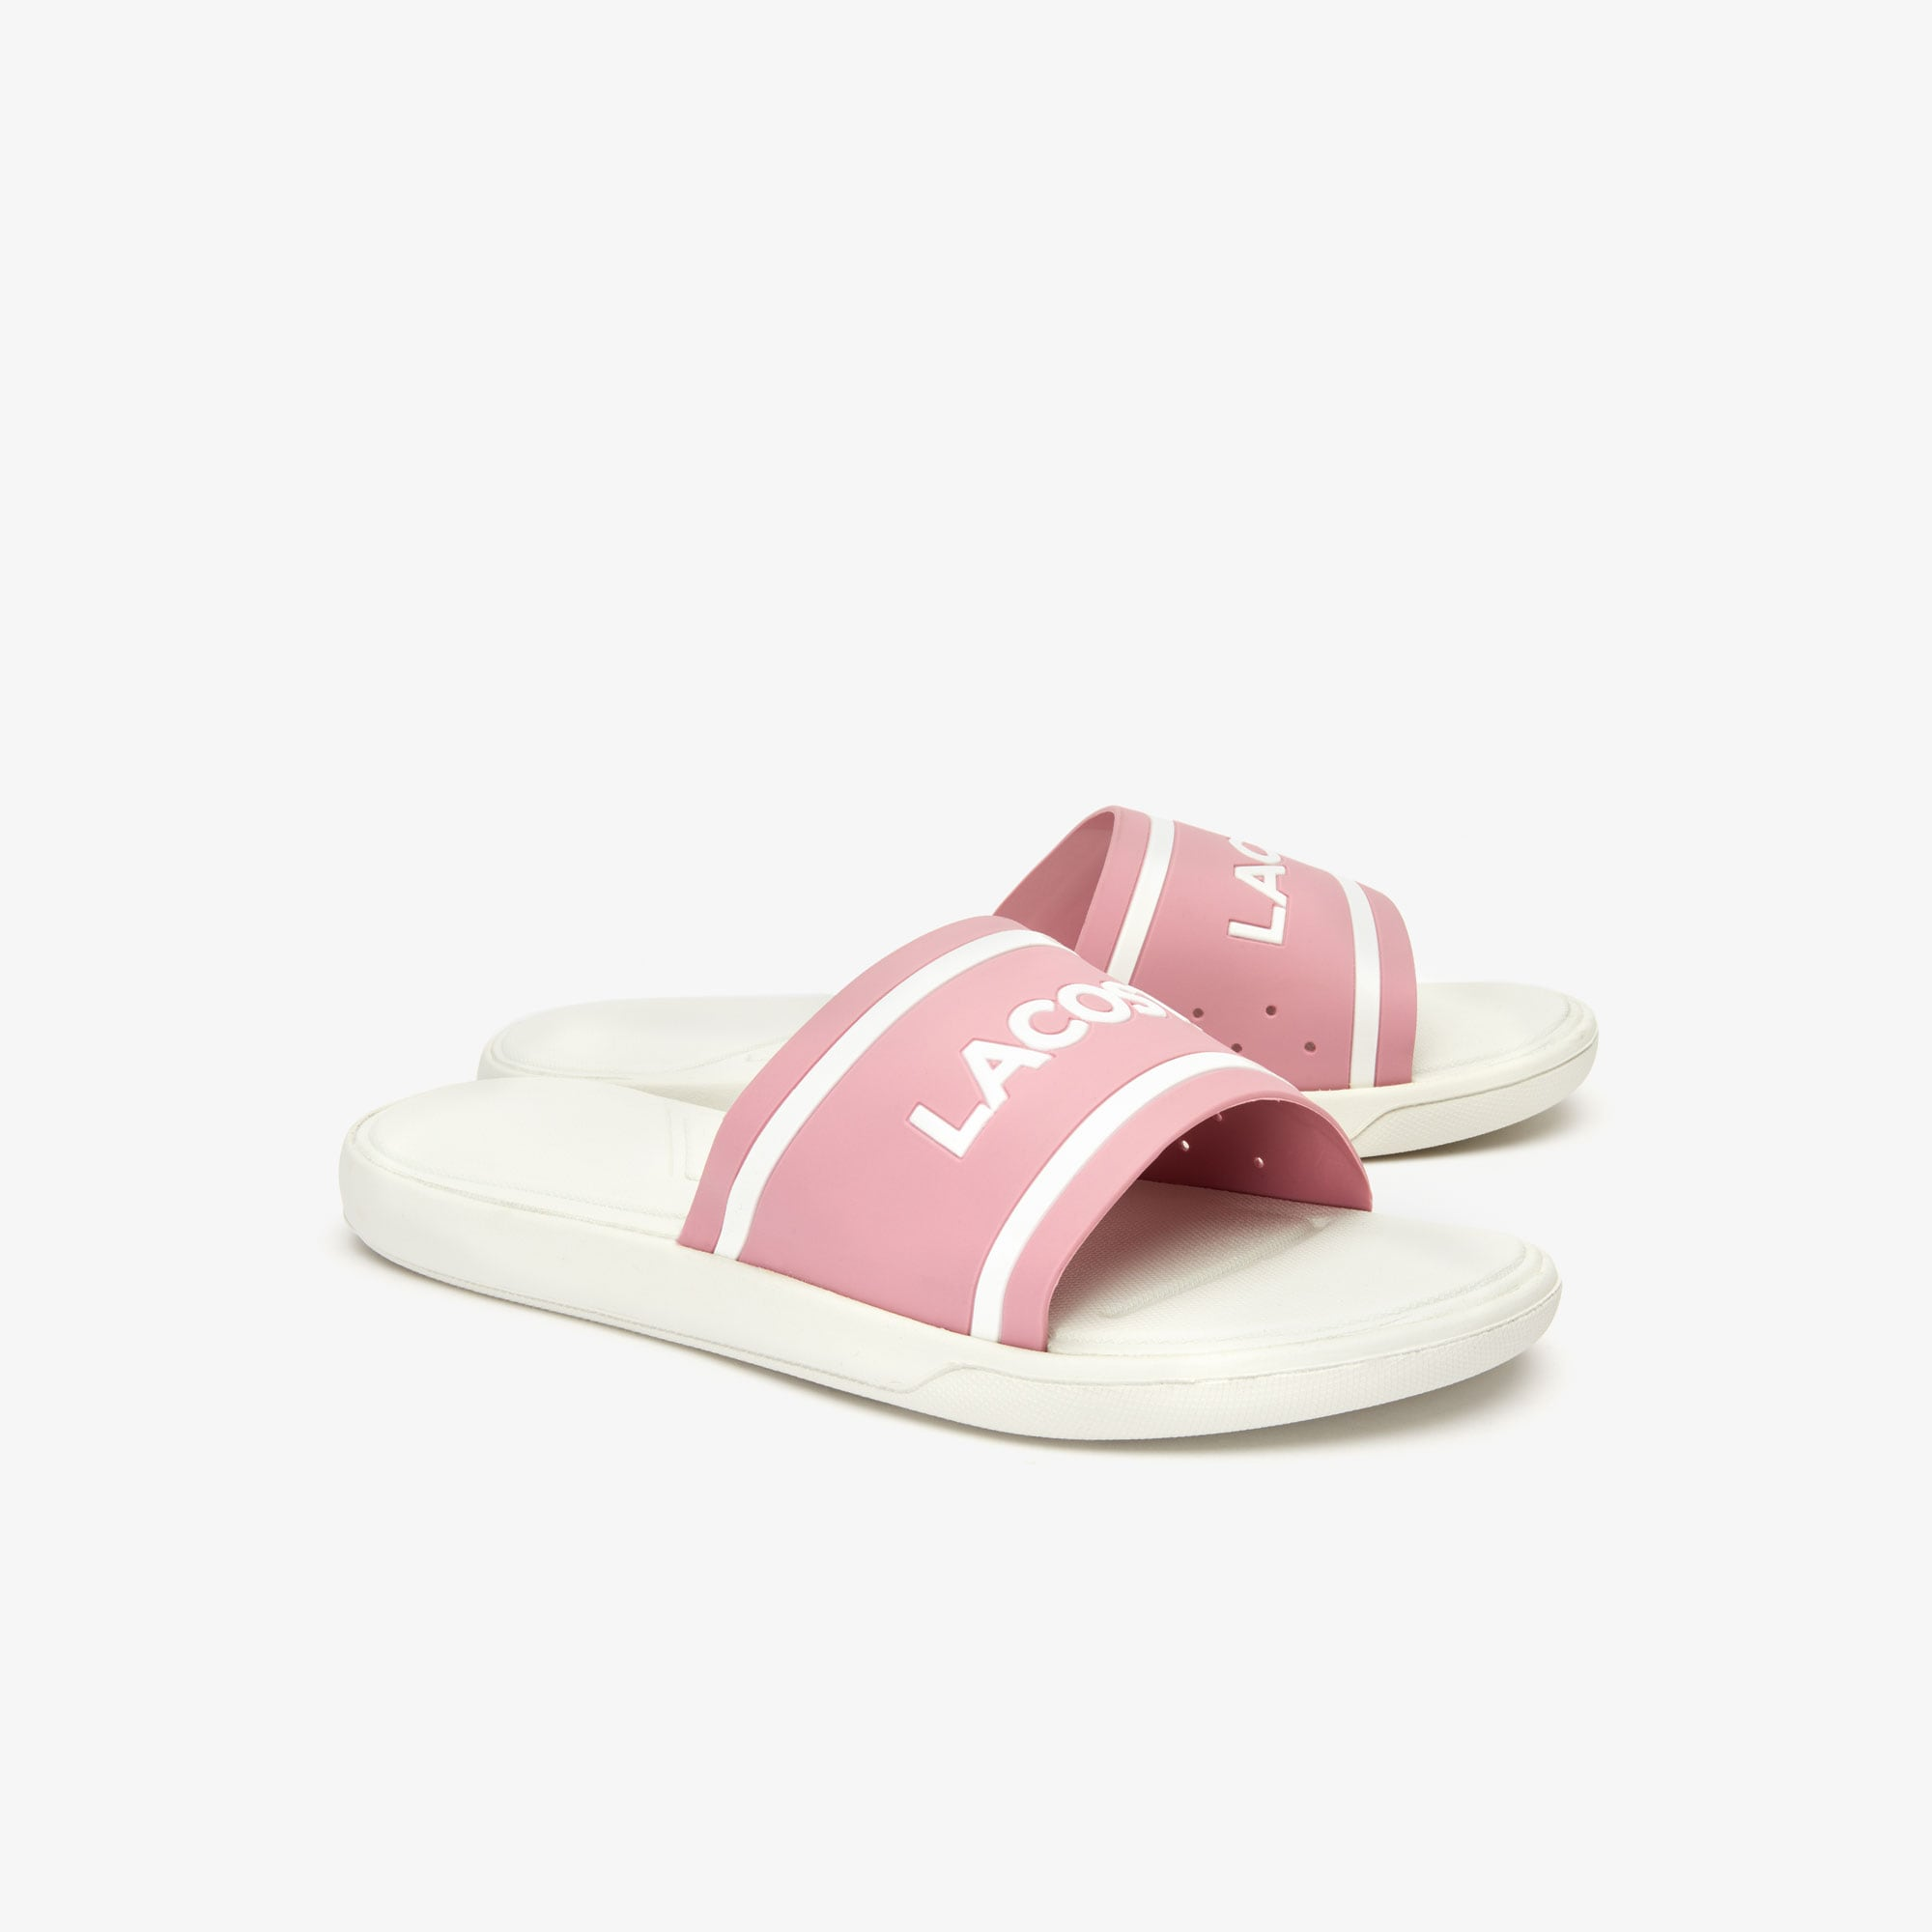 Women's L.30 Synthetic and Rubber Slides